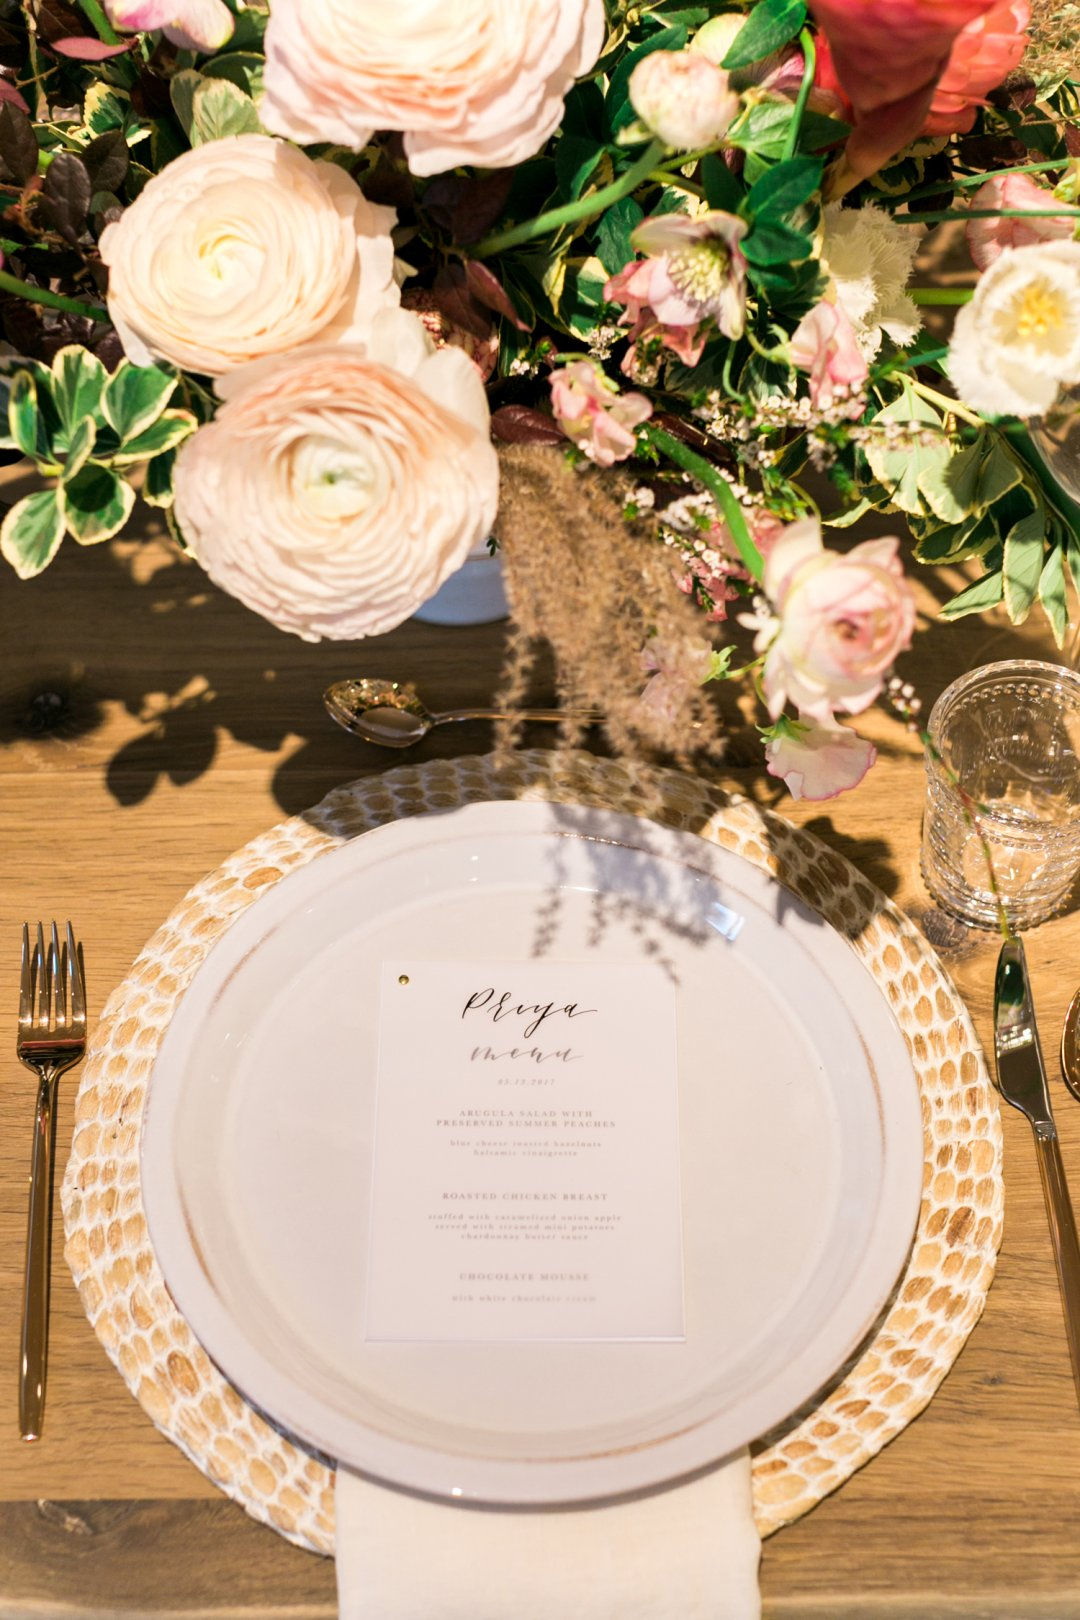 White dinner place placesetting on table